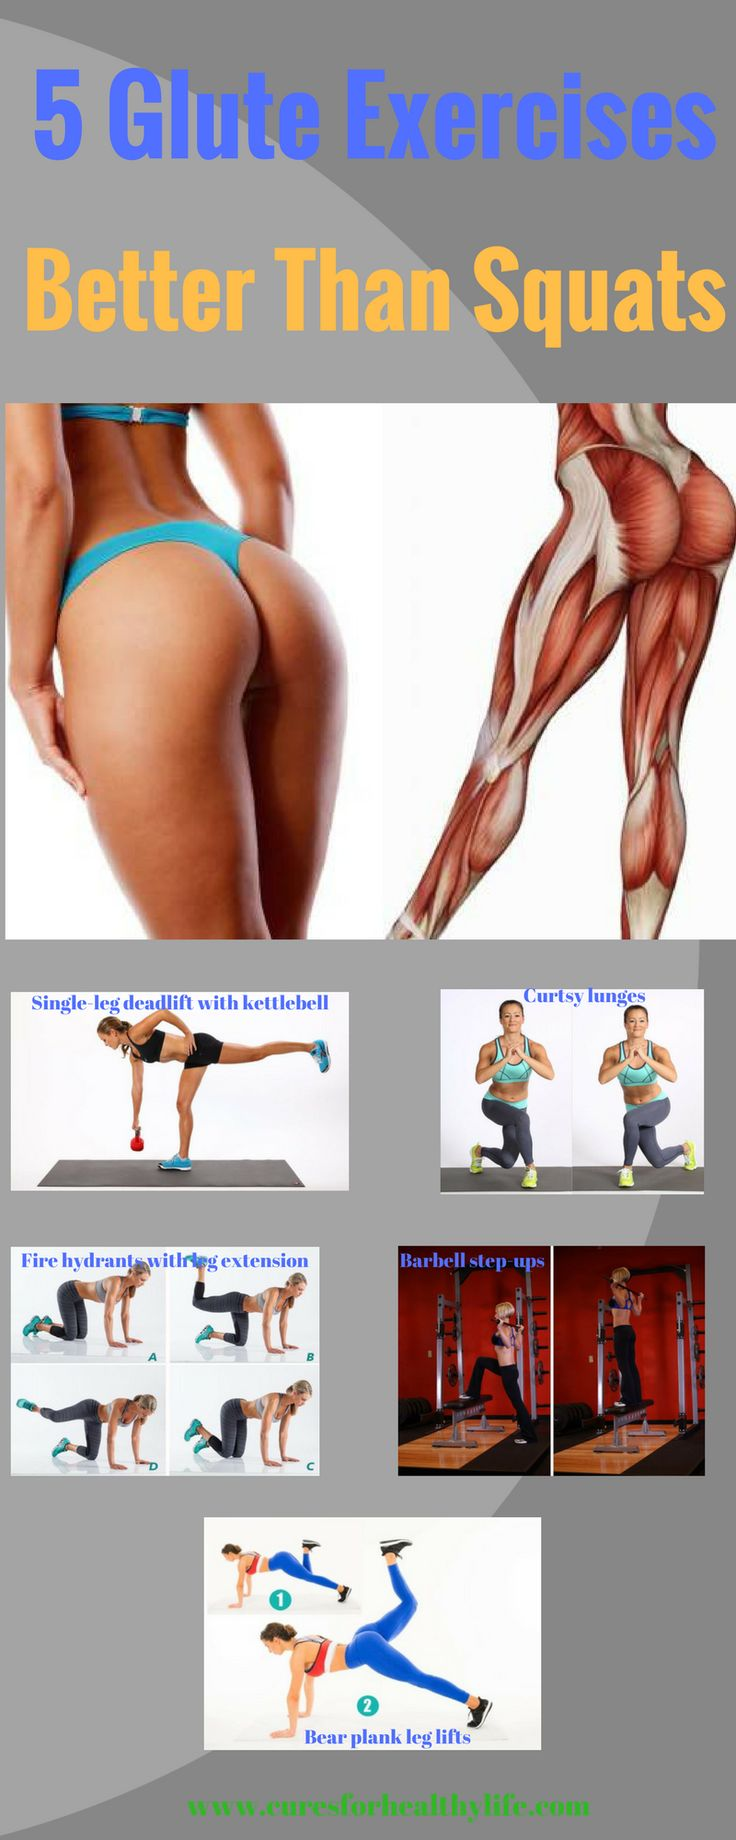 Let's be honest – squats can be rather boring and unenjoyable. Or they can activate a long forgotten knee pain right when you least need it. So is there a better way to tone your glutes and get a firm, round butt? Of course there is. You don't have to rely on squats to achieveContinue Reading